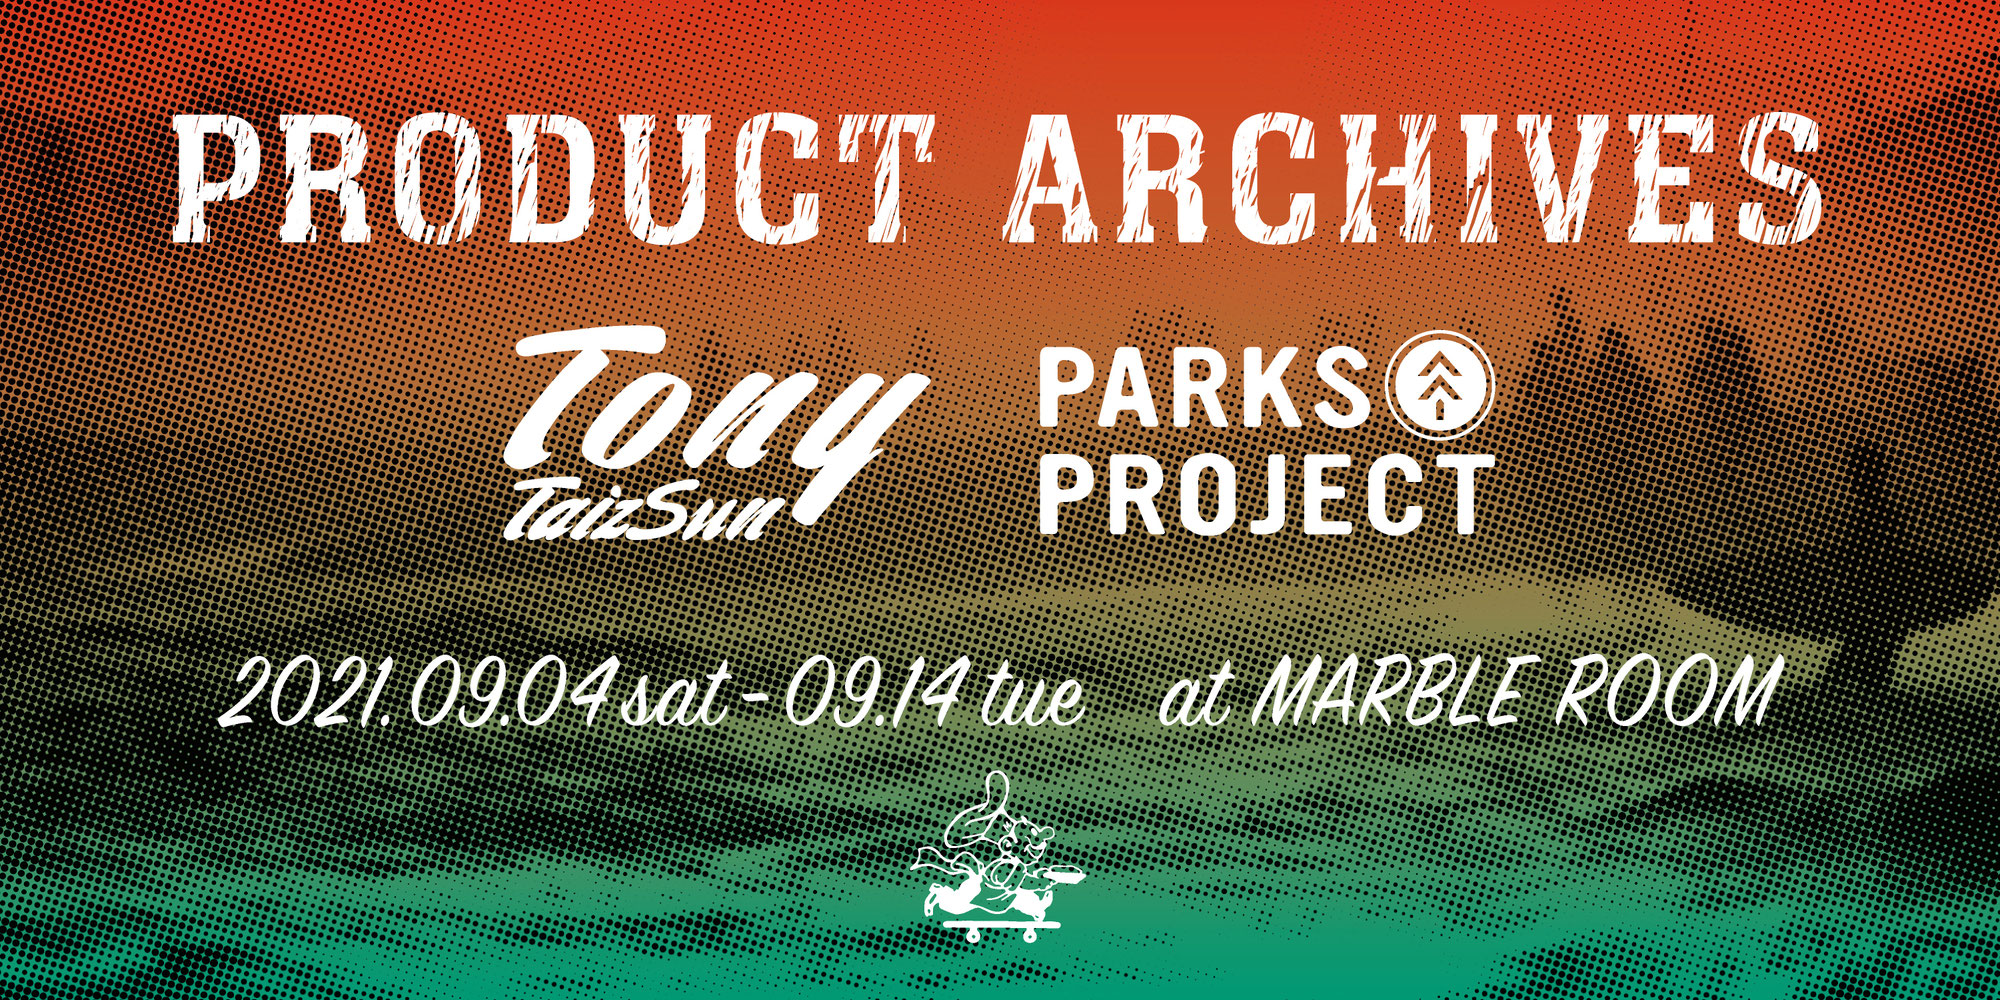 TONY / PARKS PROJECT - PRODUCT ARCHIVES